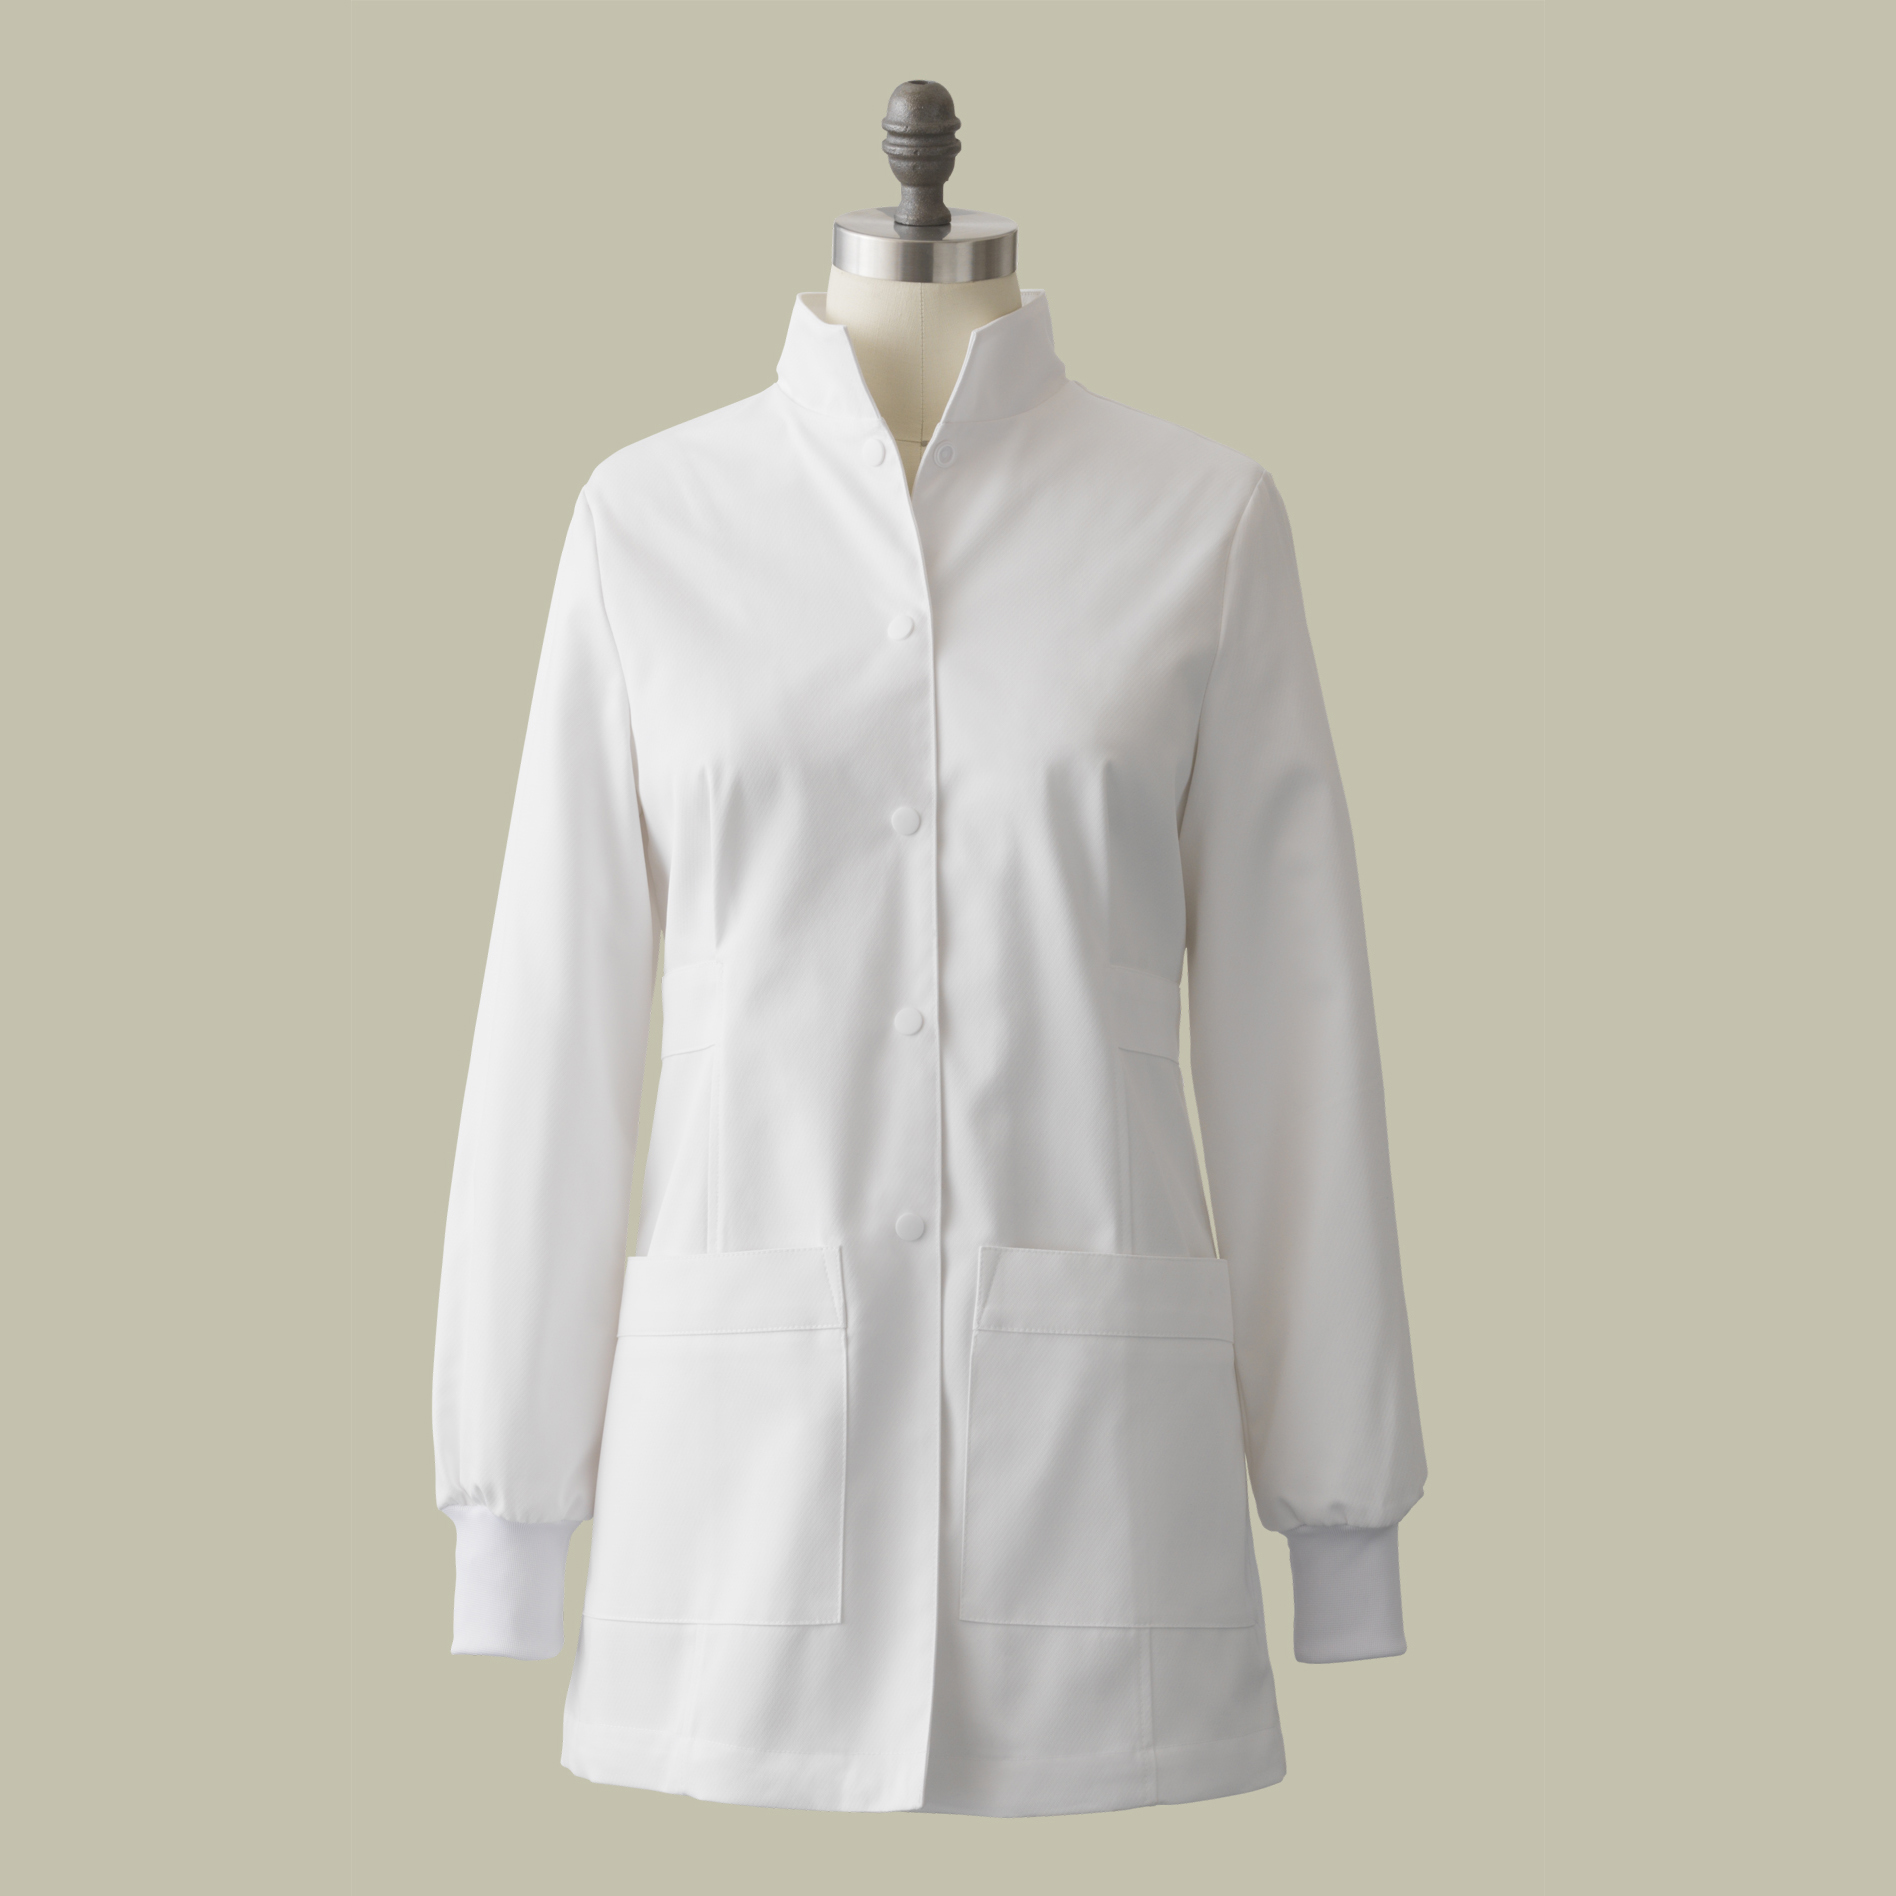 Medelita Elsie G. Women's Lab Coat